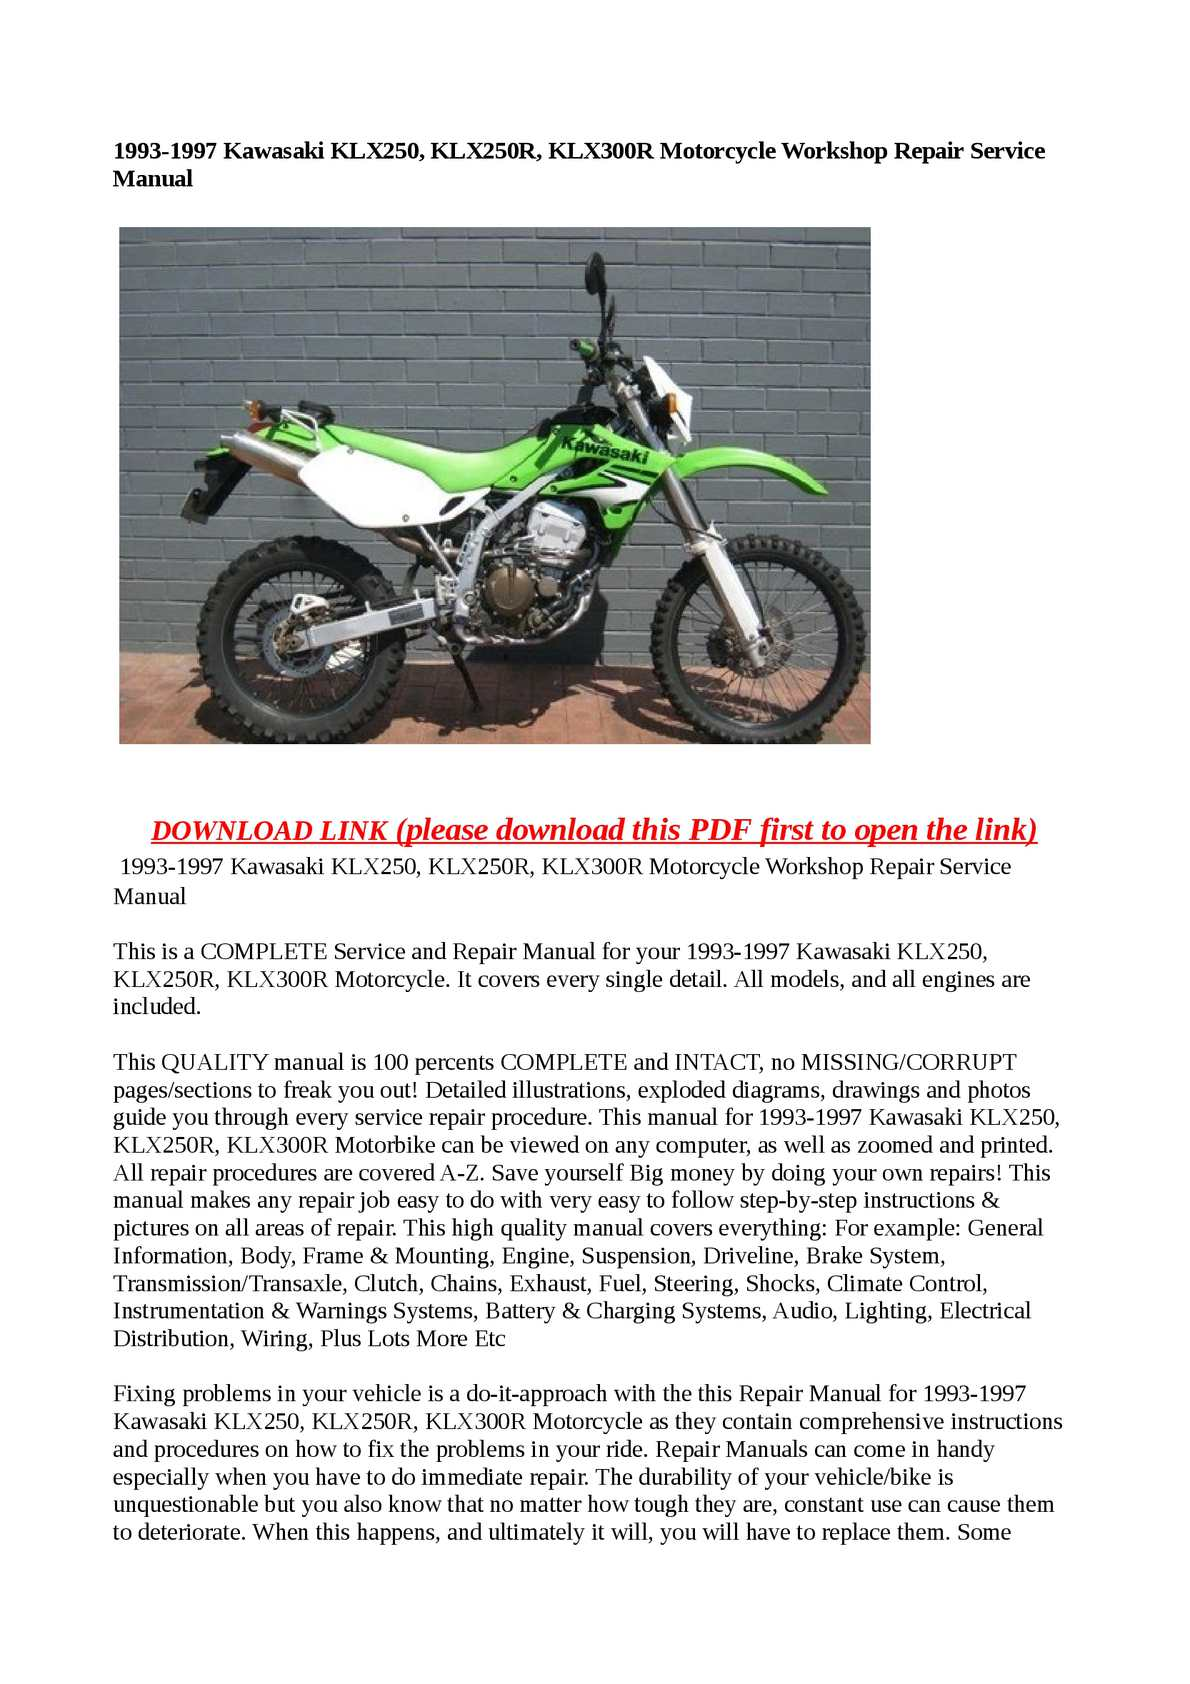 Calaméo - 1993-1997 Kawasaki KLX250, KLX250R, KLX300R Motorcycle Workshop  Repair Service Manual